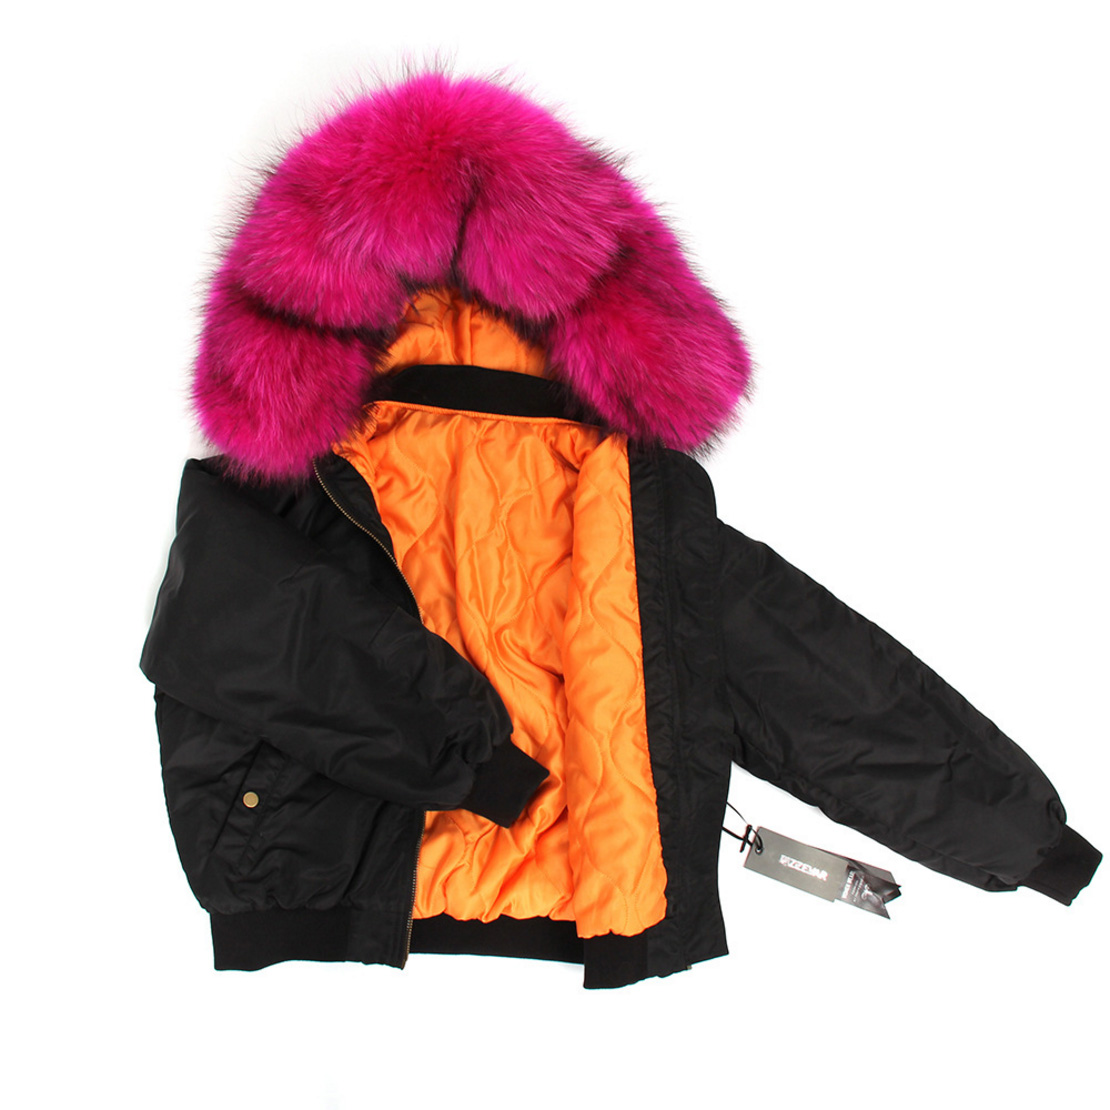 Raccoon Fur Trimmed Hooded Cotton-padded Jacket 129 Details 8